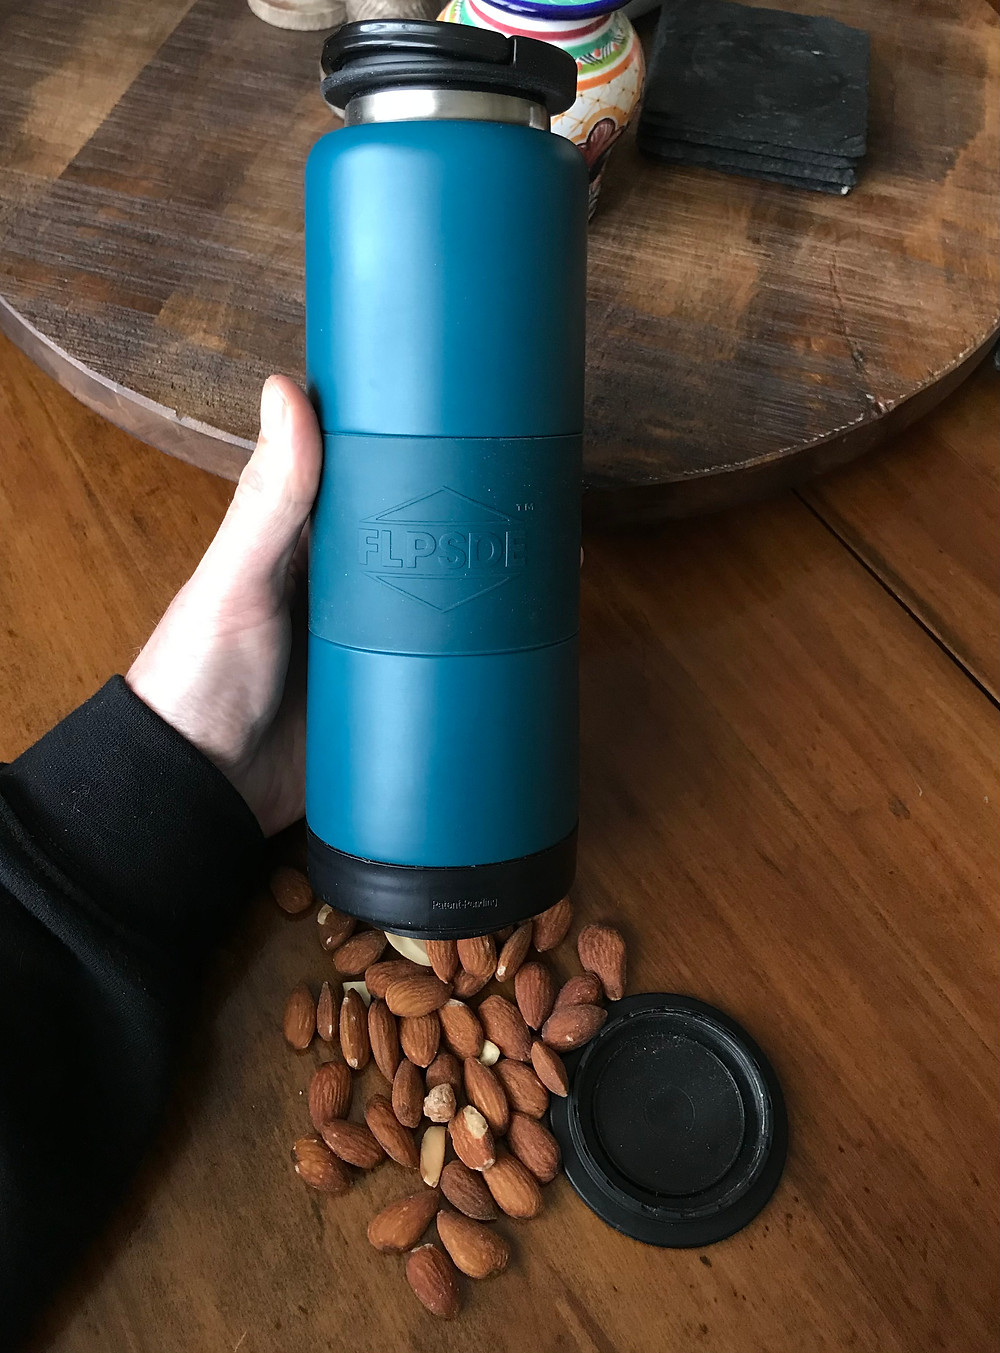 FLPSDE Dual Chamber Water Bottle with Storage for Snacks and More